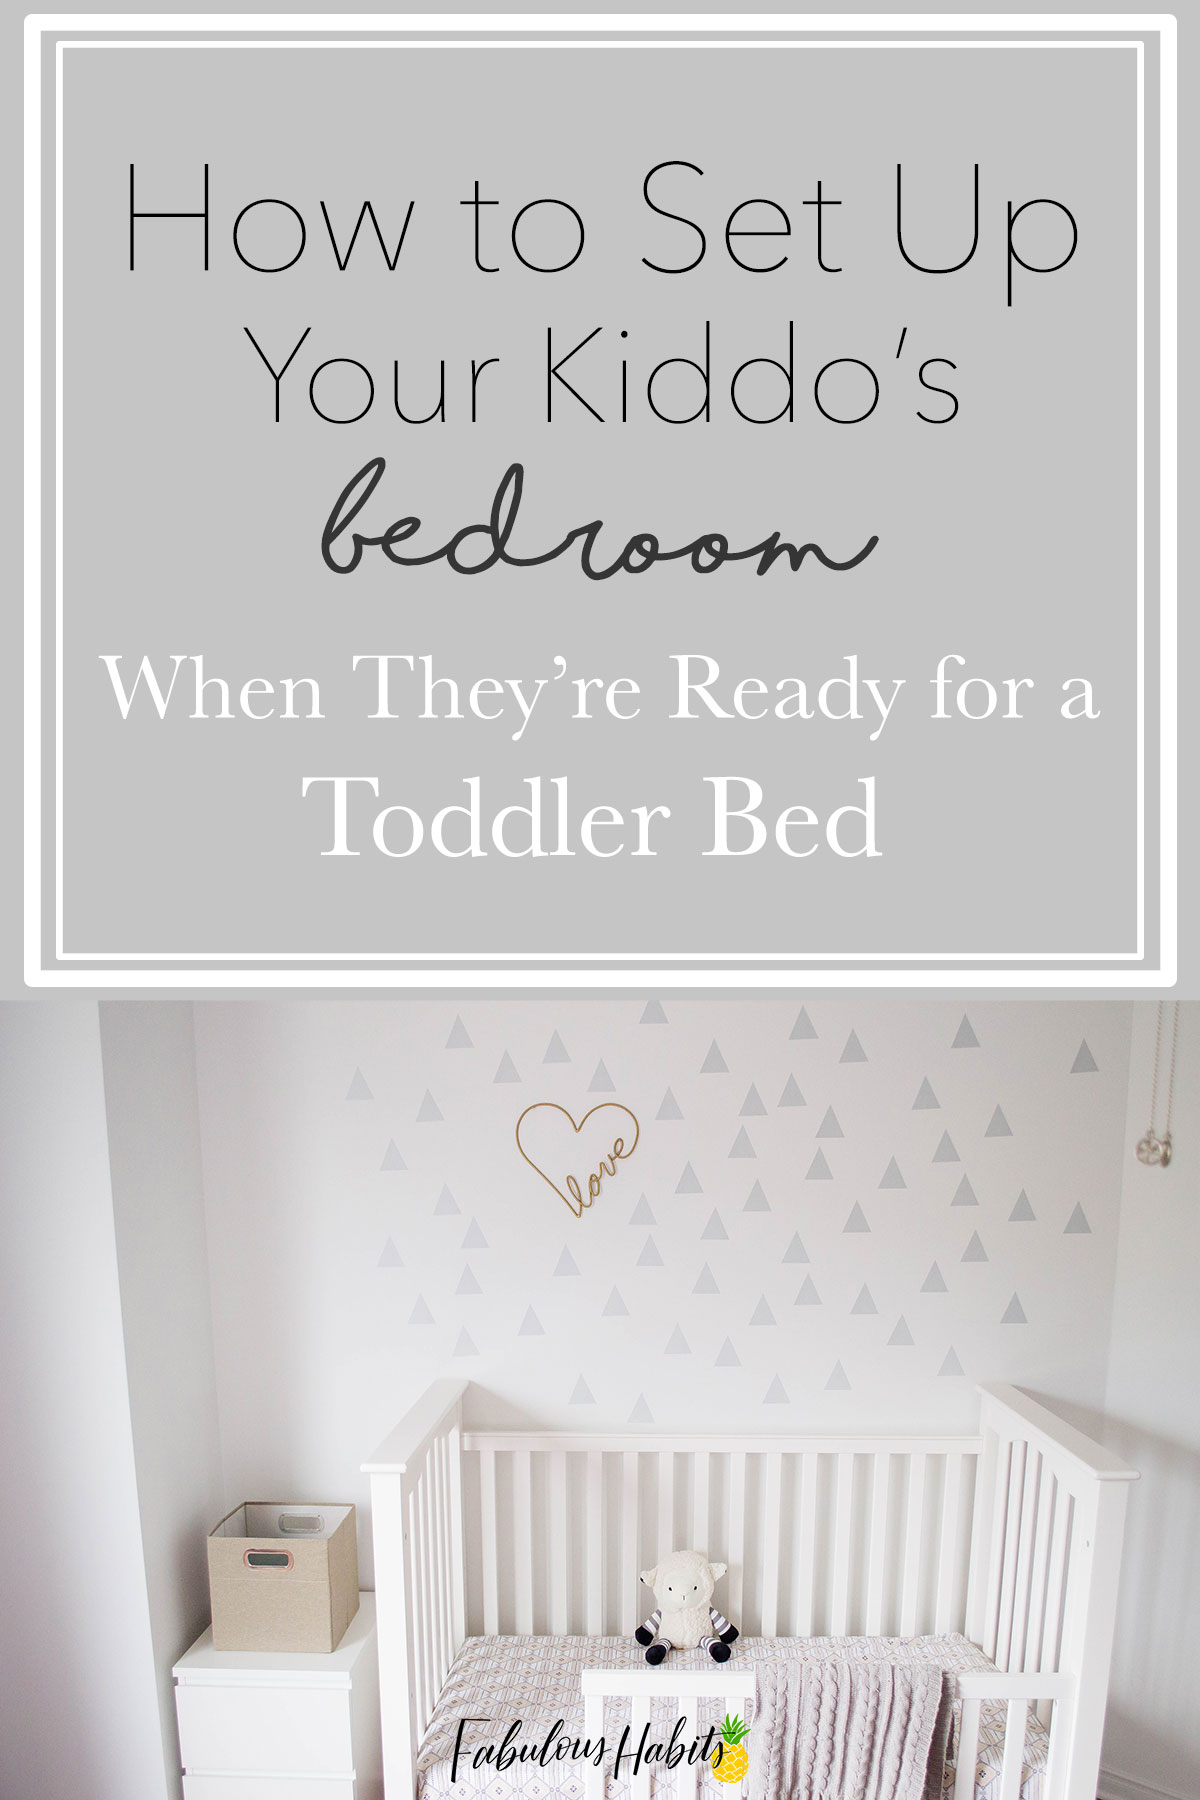 How to set up a kid's room once they've graduated to a toddler bed. Exciting times are ahead!